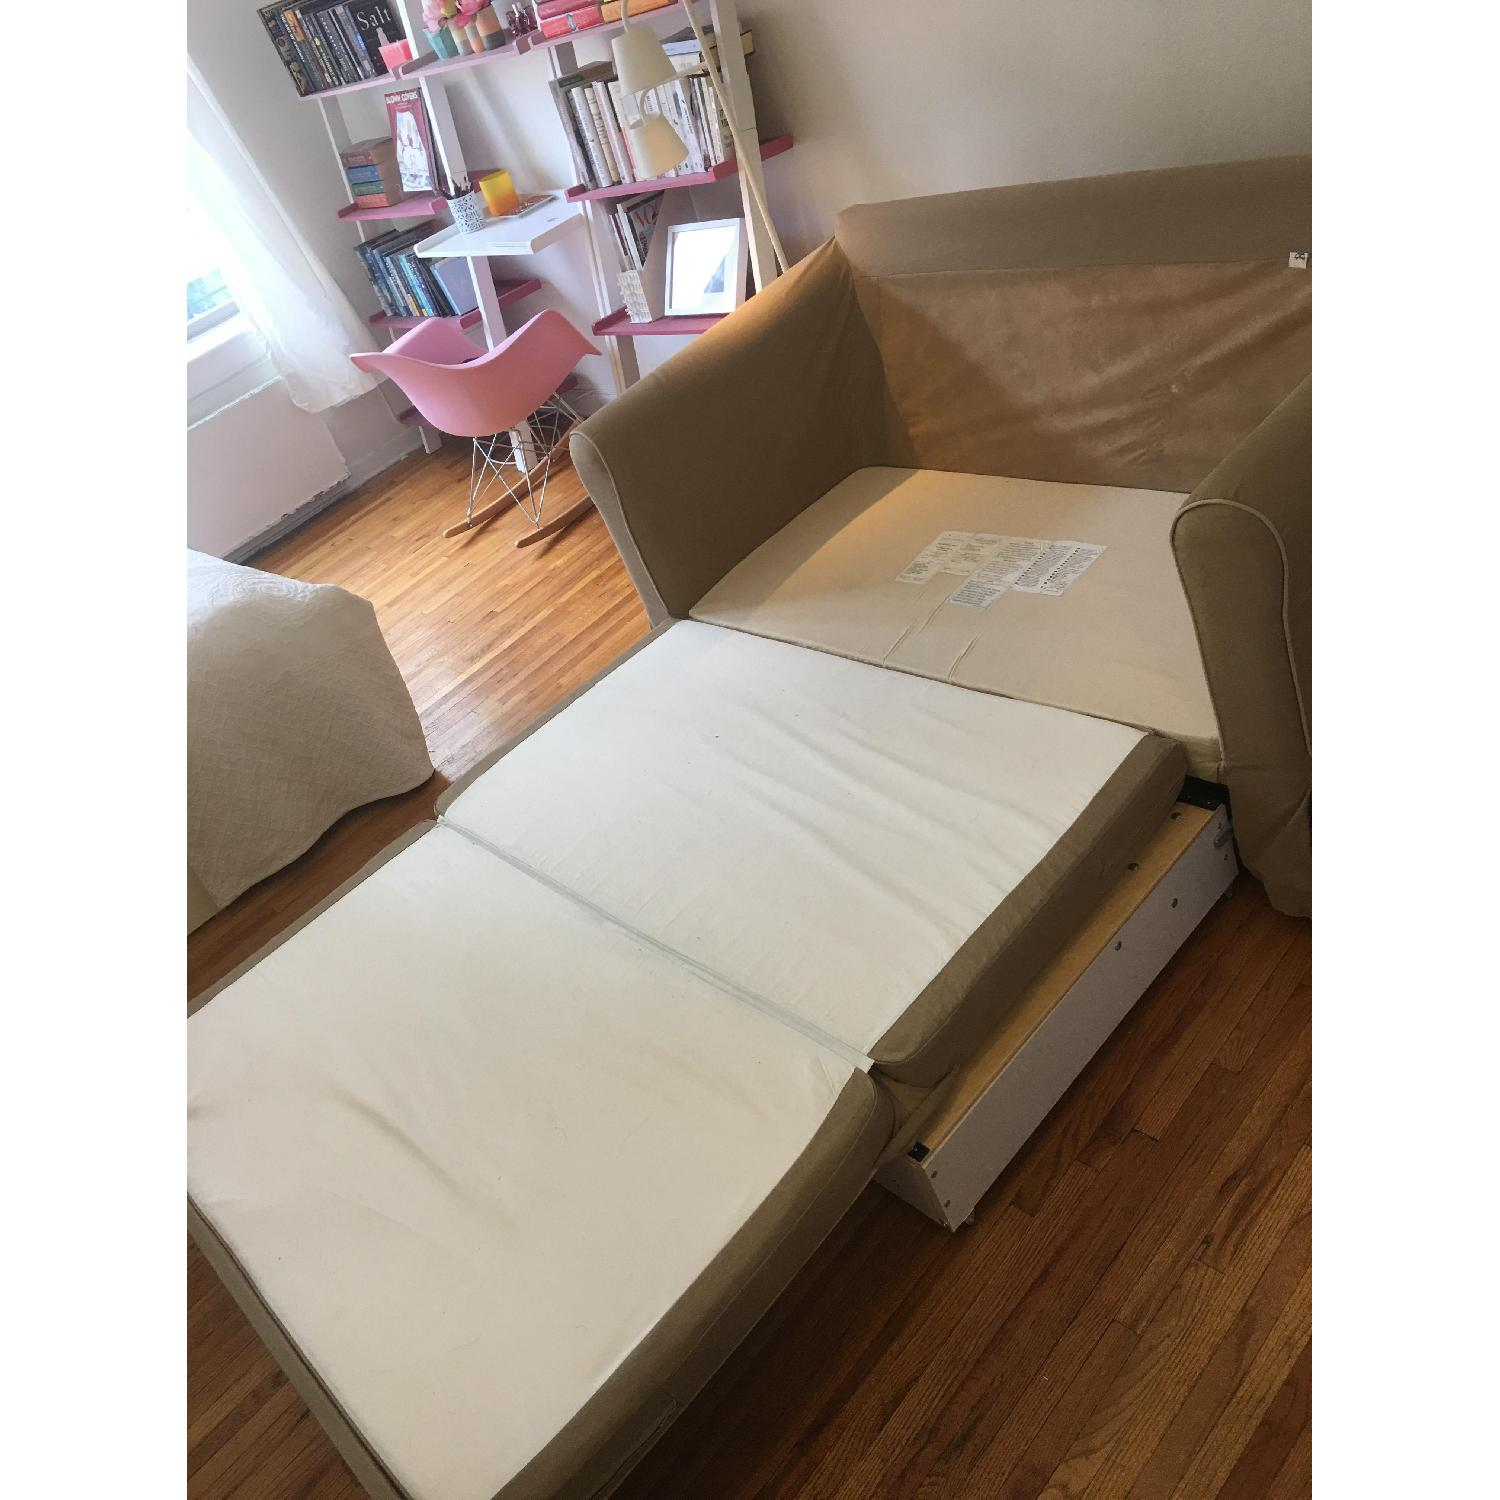 West Elm Beige Fold-Out Couch - image-6